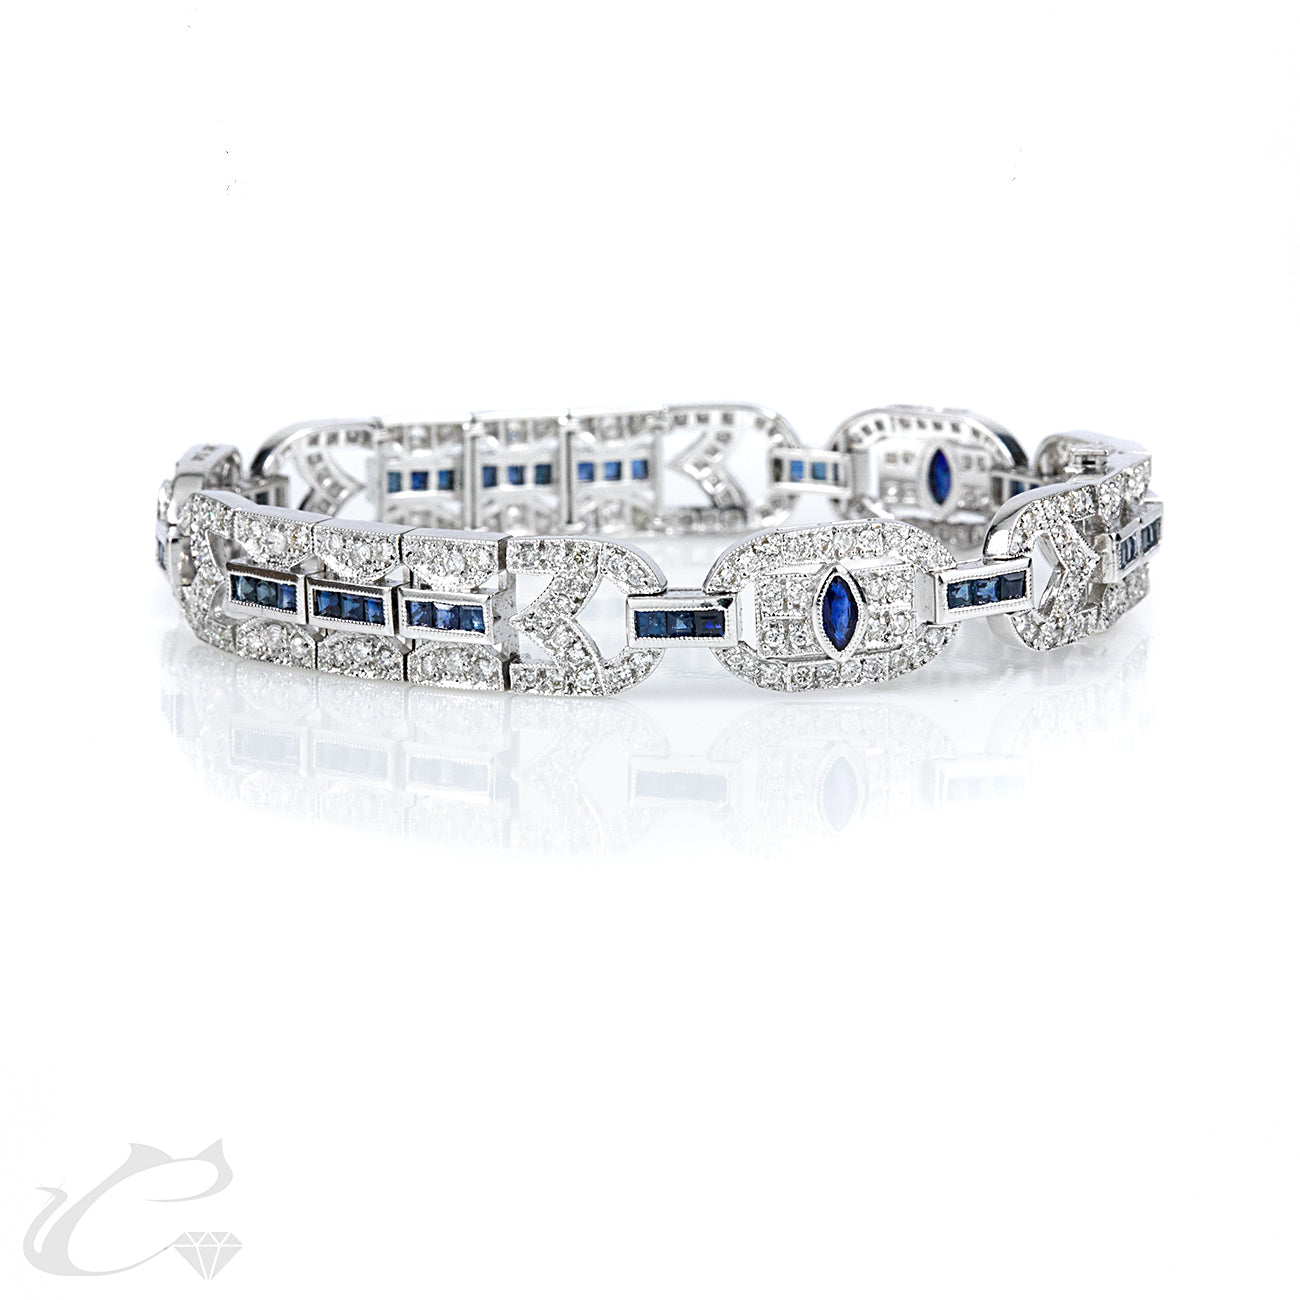 Art Deco Sapphire and Diamond Bracelet